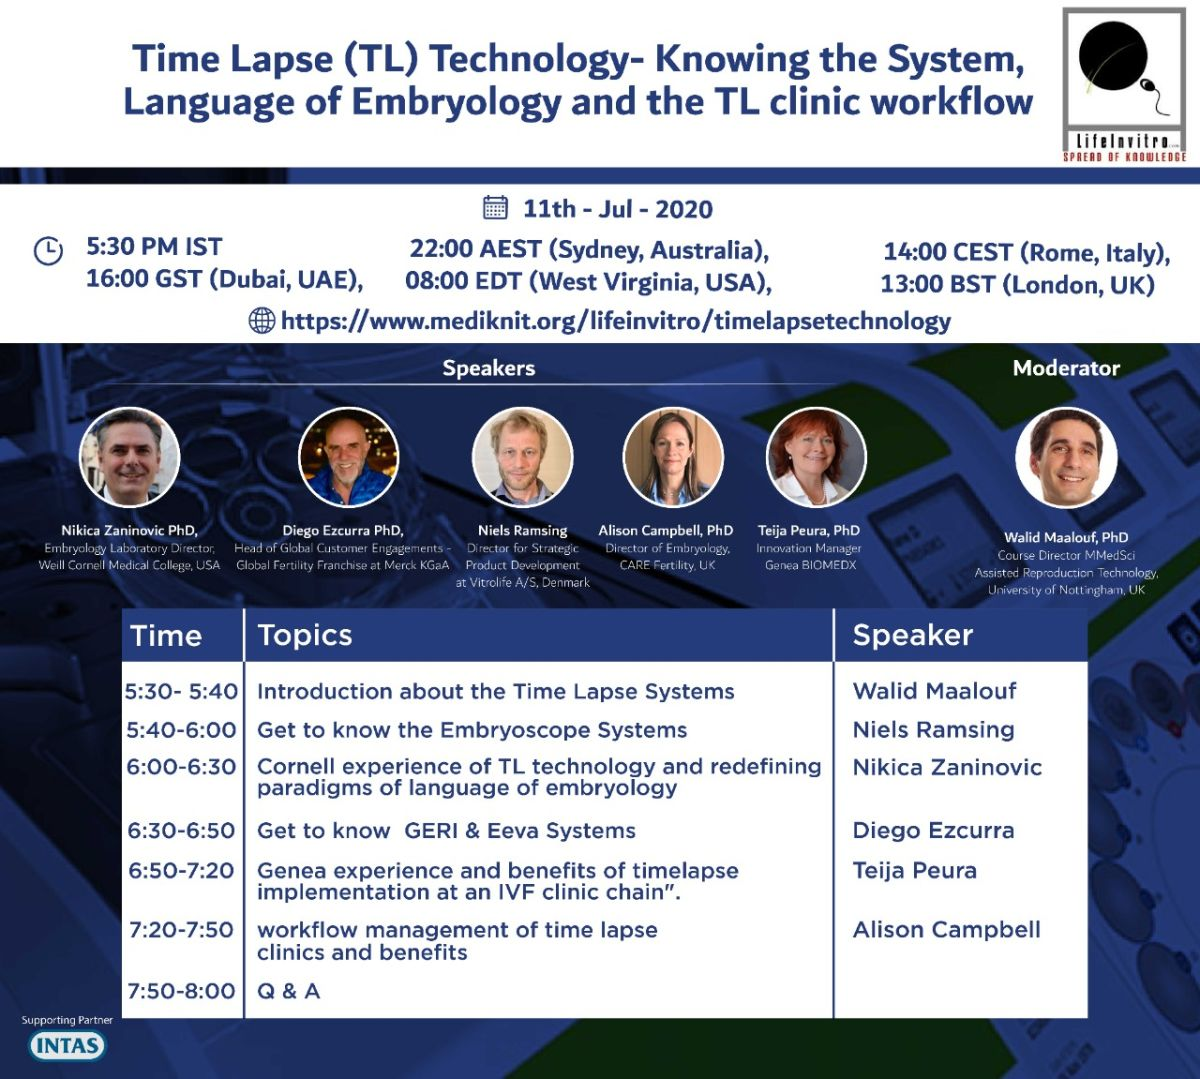 Webinar on Time Lapse (TL) Technology- Knowing the System, Language of Embryology and the TL clinic workflow